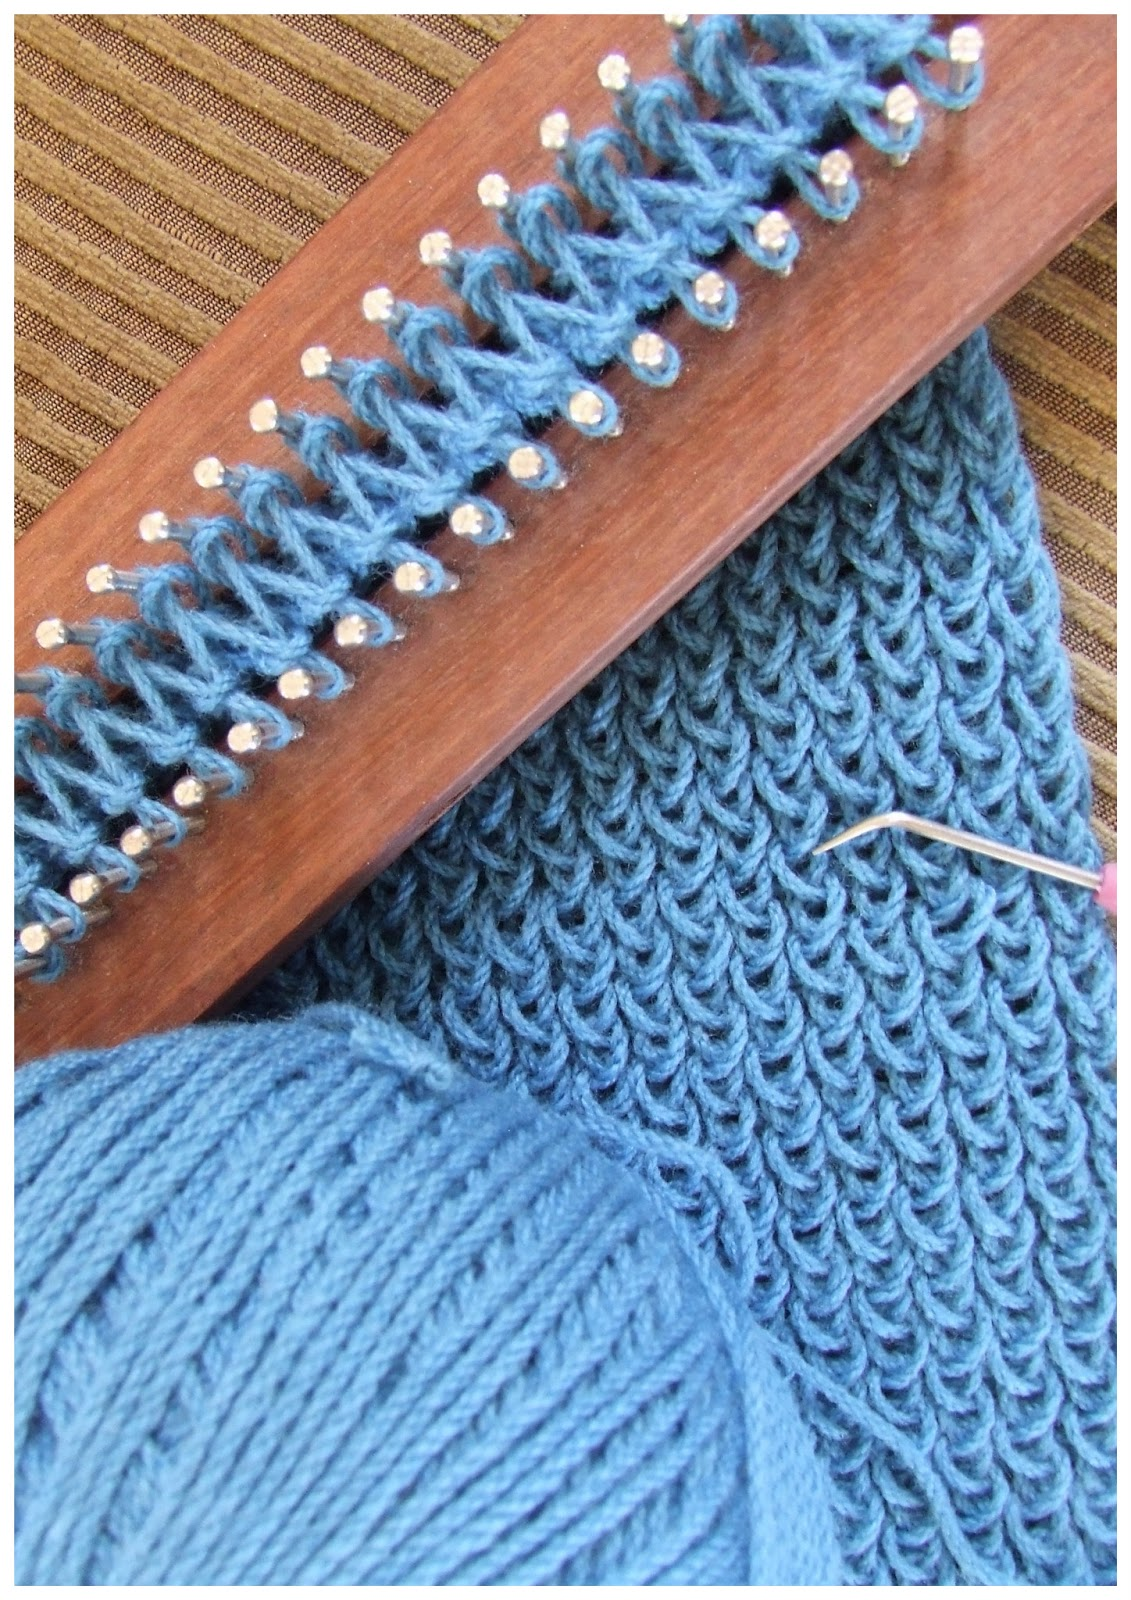 Knitting Loom Stitches : Fitzbirch crafts loom knitting